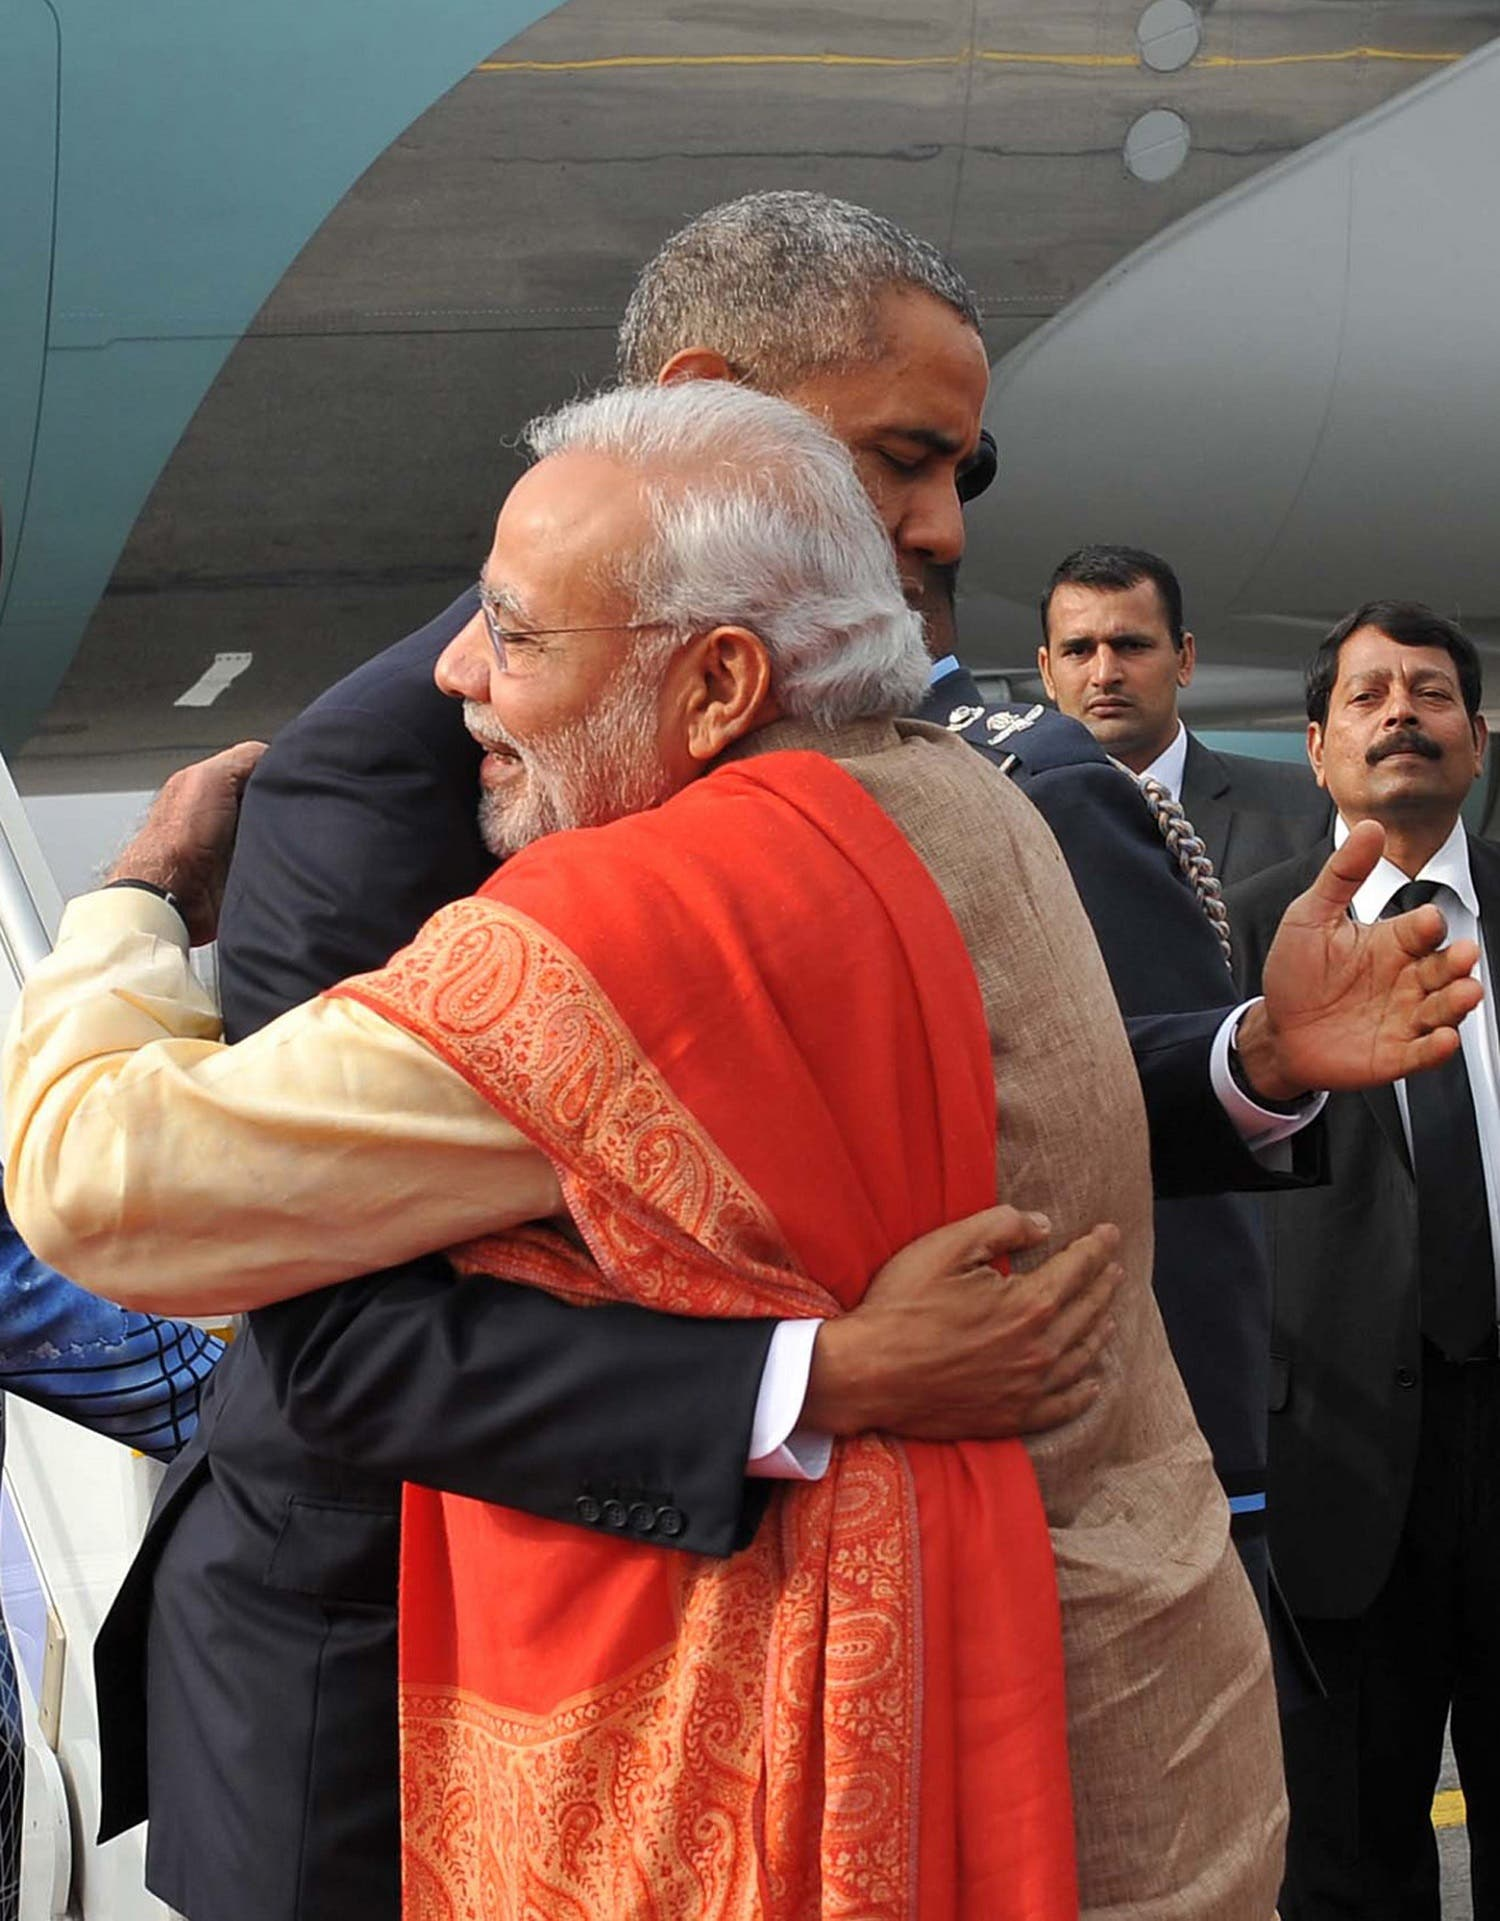 Modi and Obama hug as the then US president arrives in New Delhi on January 25. (AFP)